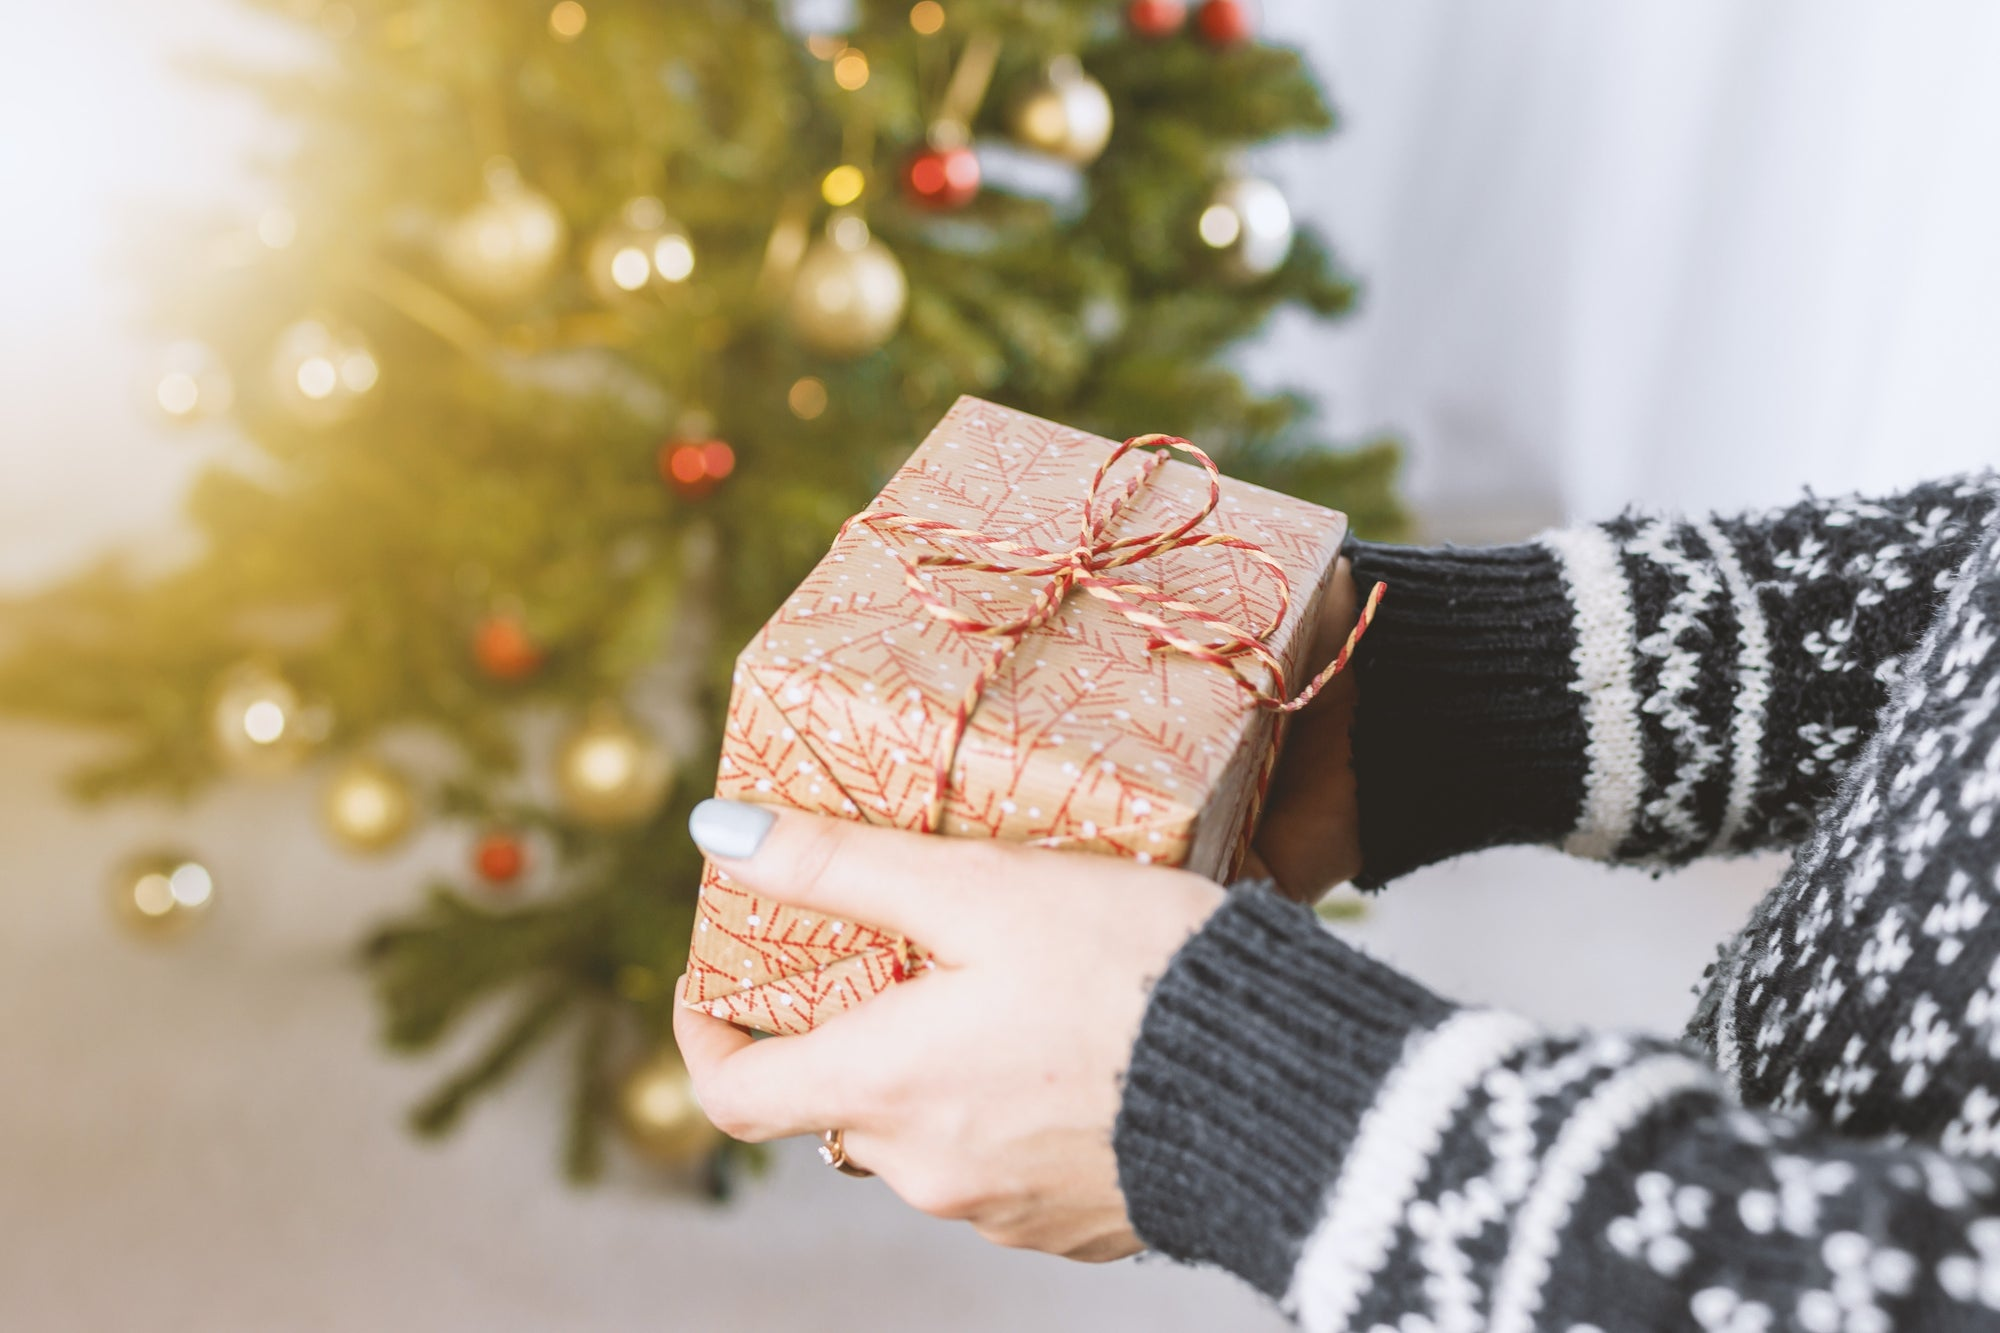 Holiday Gift Guide 2019 - Natural Skincare Gifts Made With Sea Kelp!